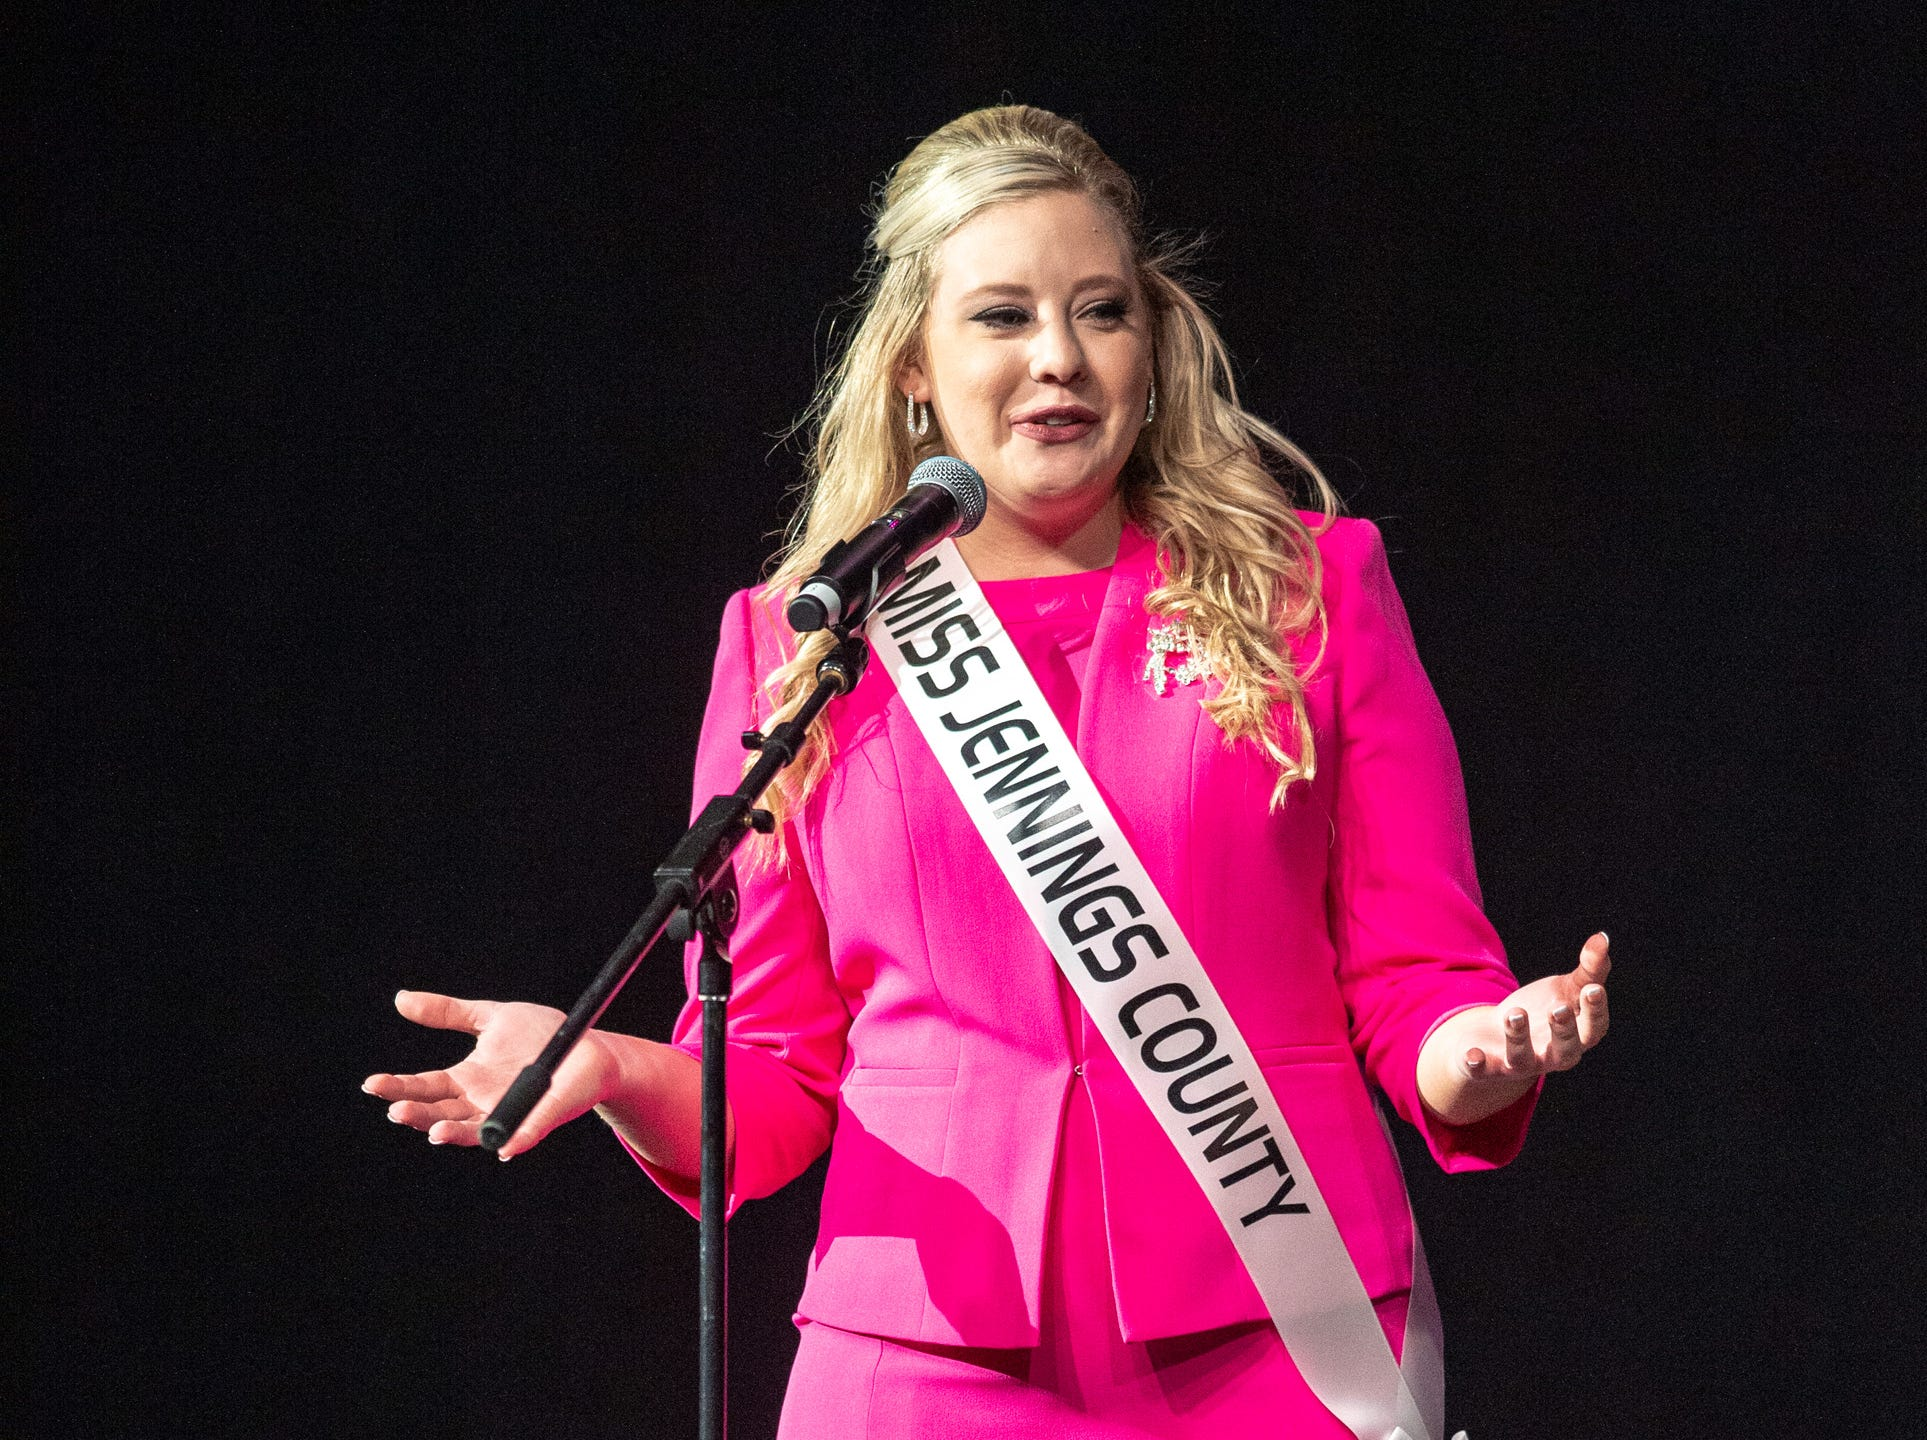 Miss Jennings County, Adrianna Gasper, during the 61st Indiana State Fair Queen Pageant at the Indiana State Fairgrounds in Indianapolis on Sunday, Jan. 6, 2019.